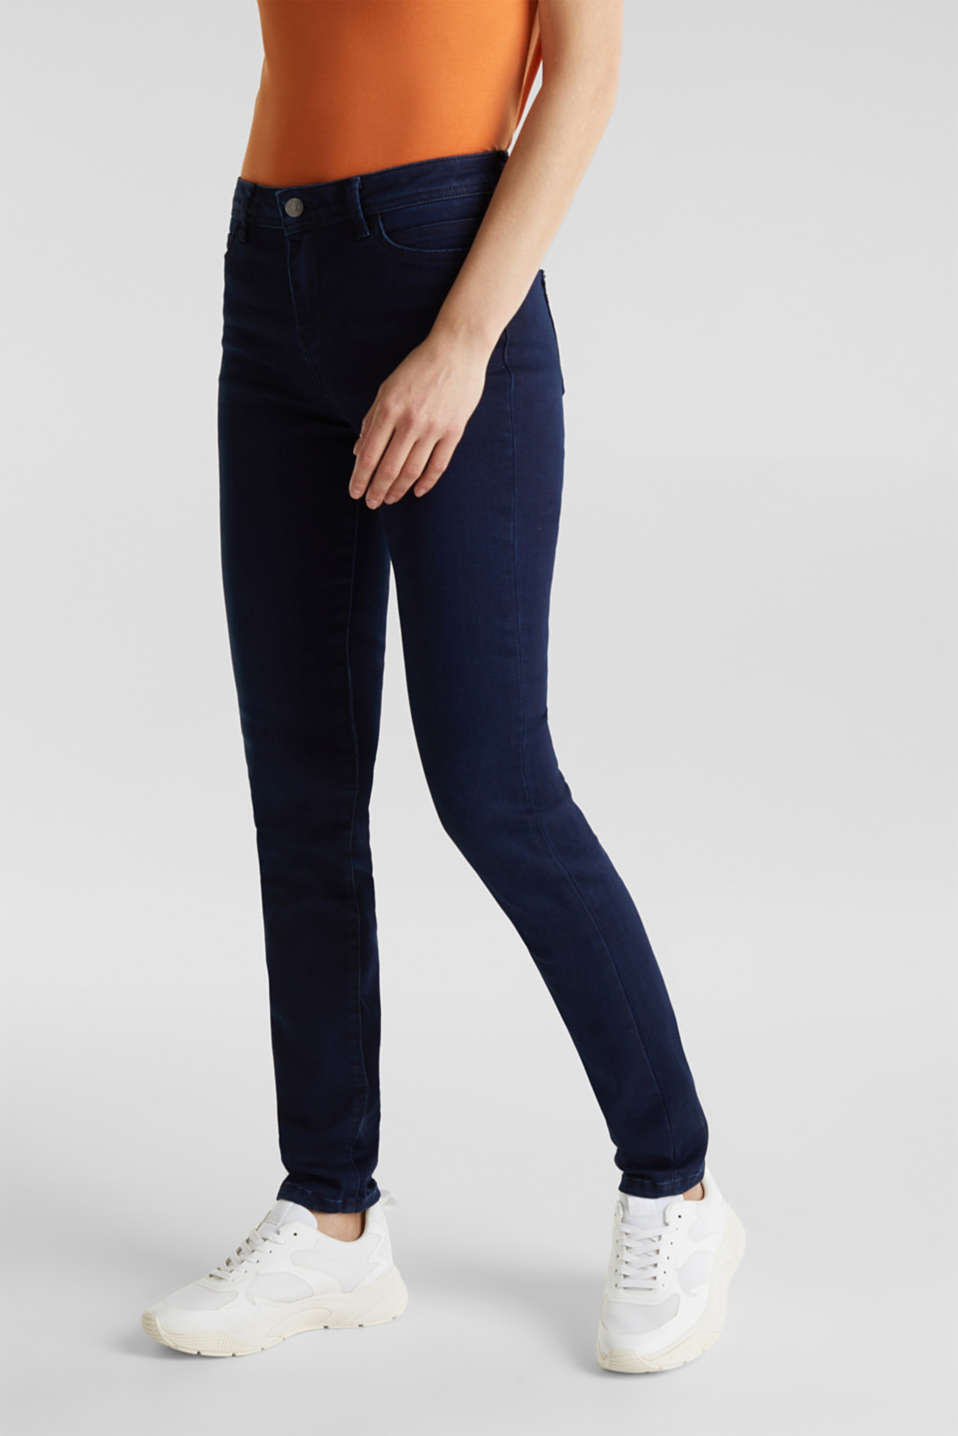 REPREVE stretch jeans with recycled polyester, BLUE DARK WASH, detail image number 6